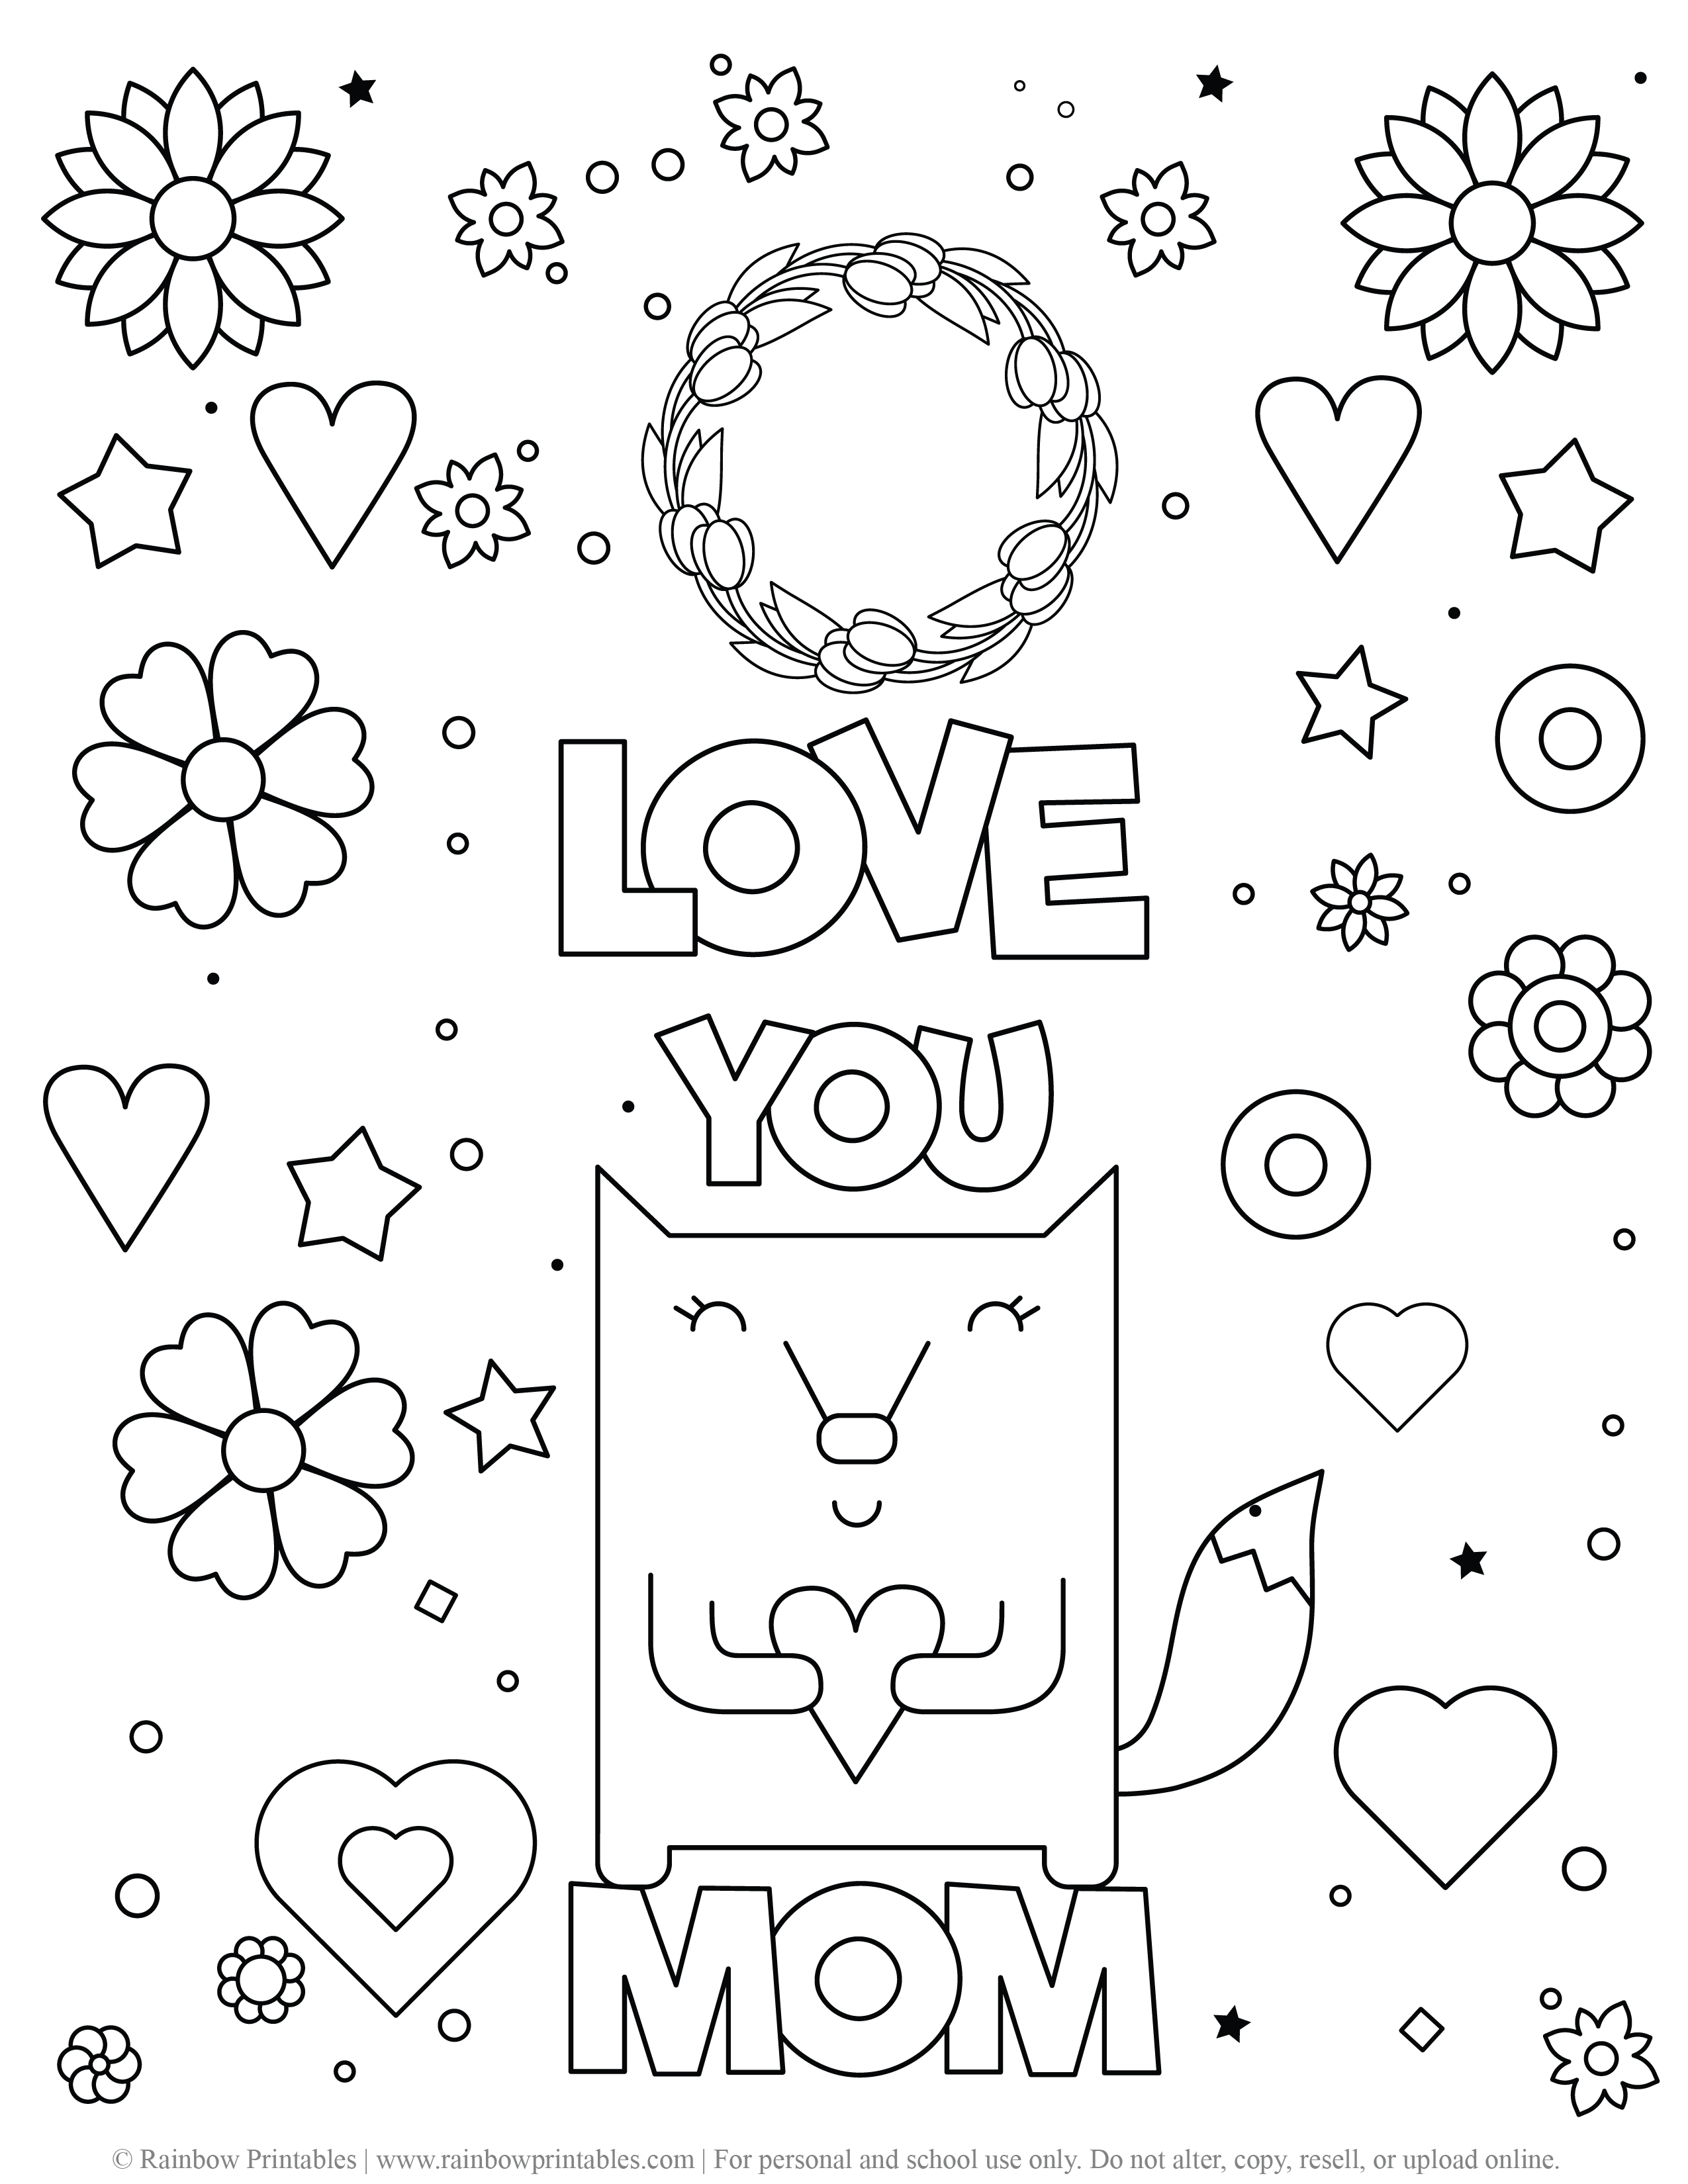 CUTE FOX I LOVE YOU MOM COLORING PAGE FLOWERS SPARKLES FLORAL COLORING PAGE ACTIVITY FOR KIDS LINE ART MOTHER'S DAY Cute Card